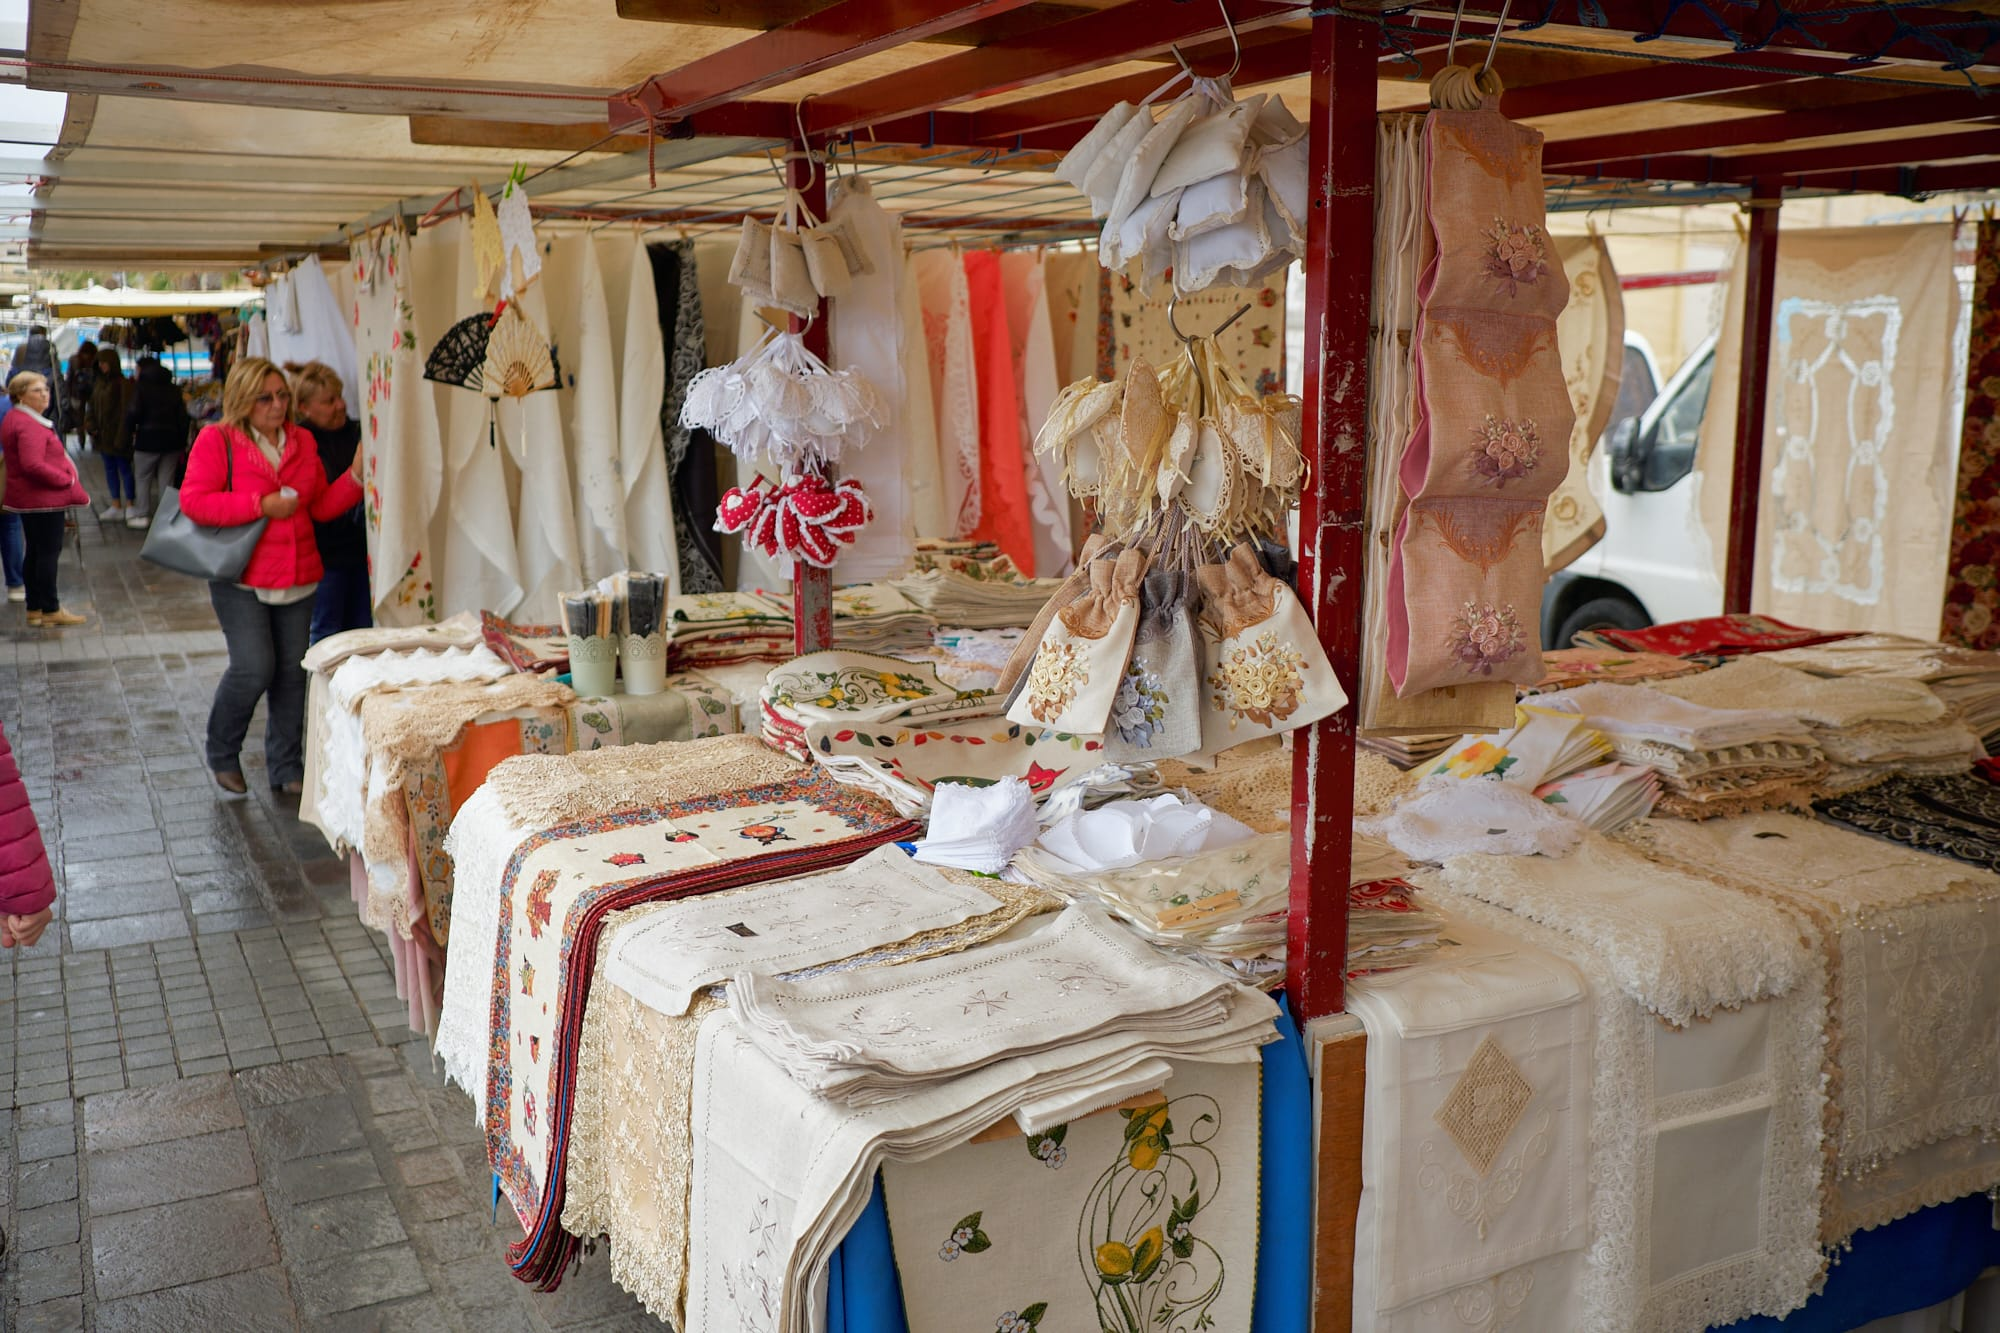 market stall selling cloth goods